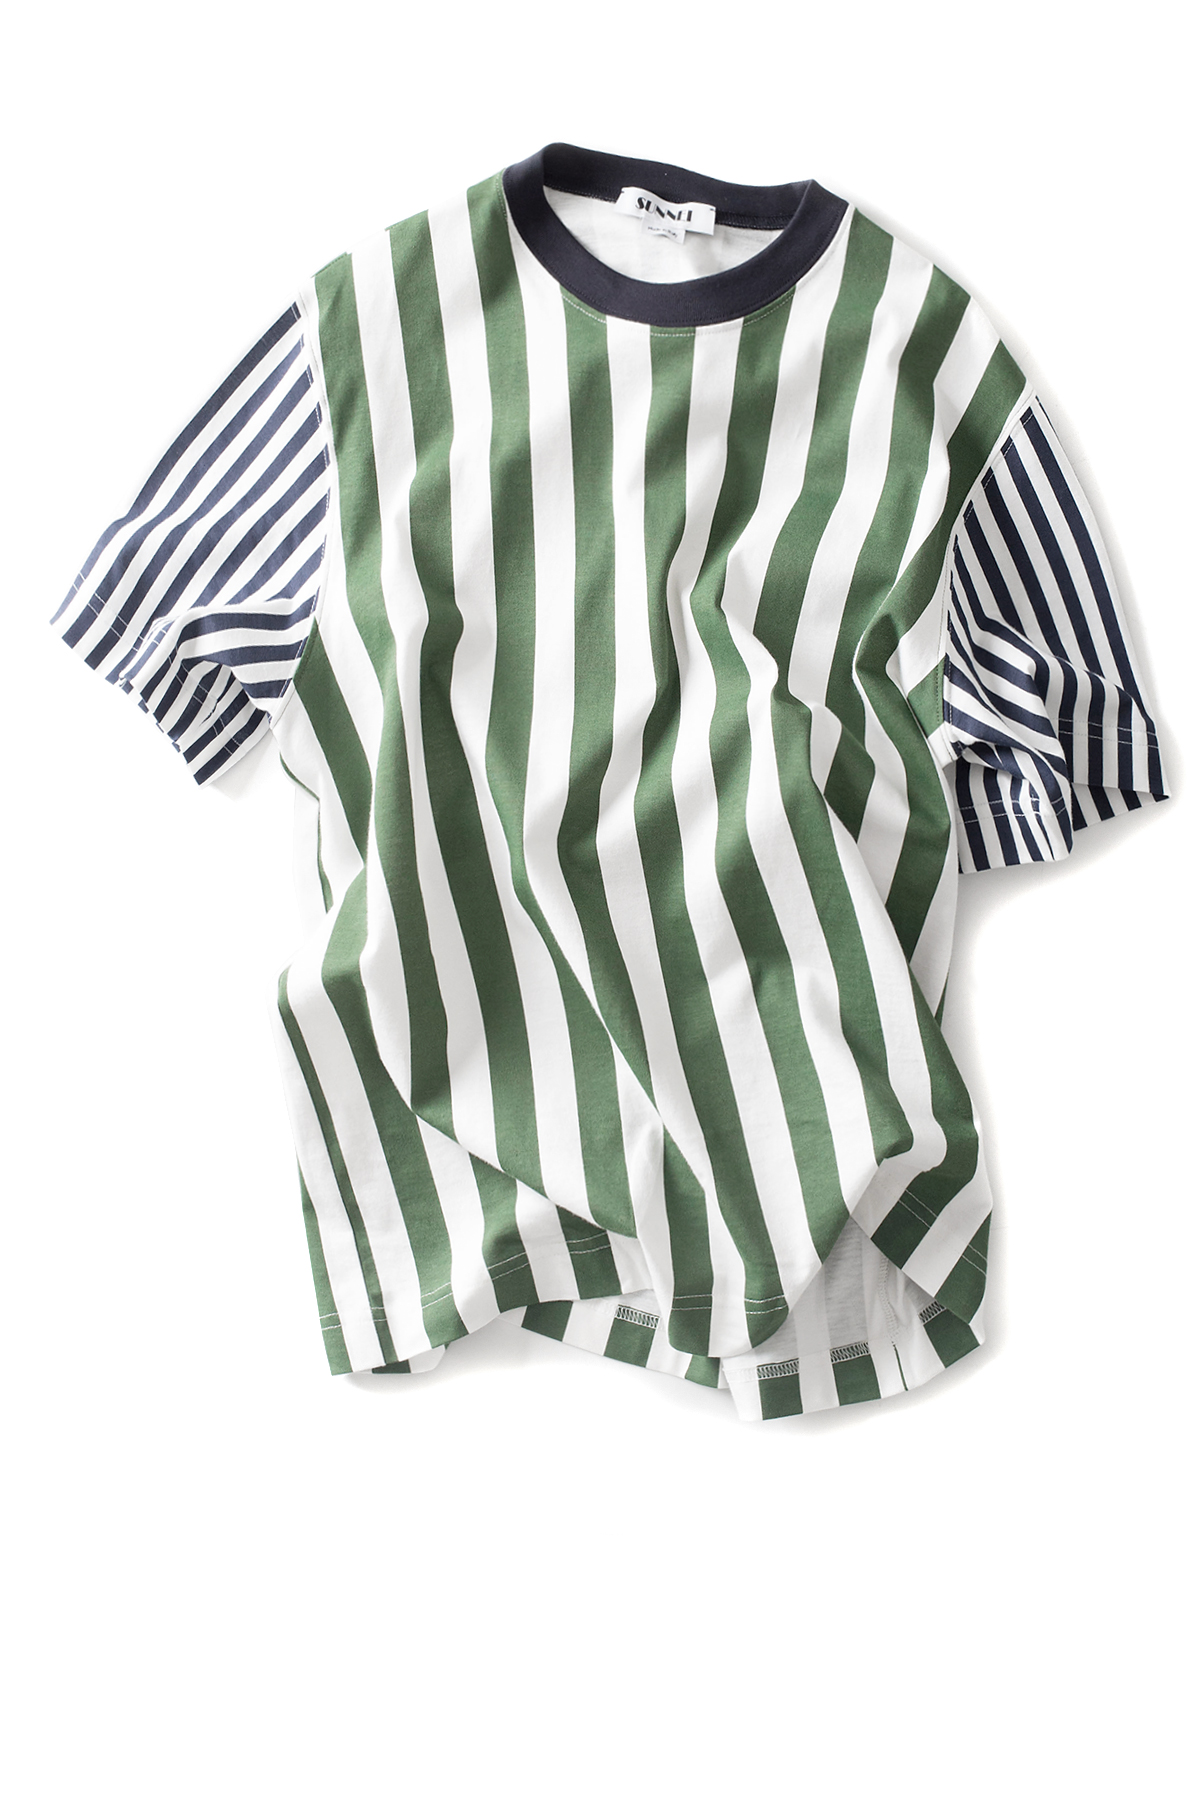 SUNNEI : Stripe T-Shirt (Green)